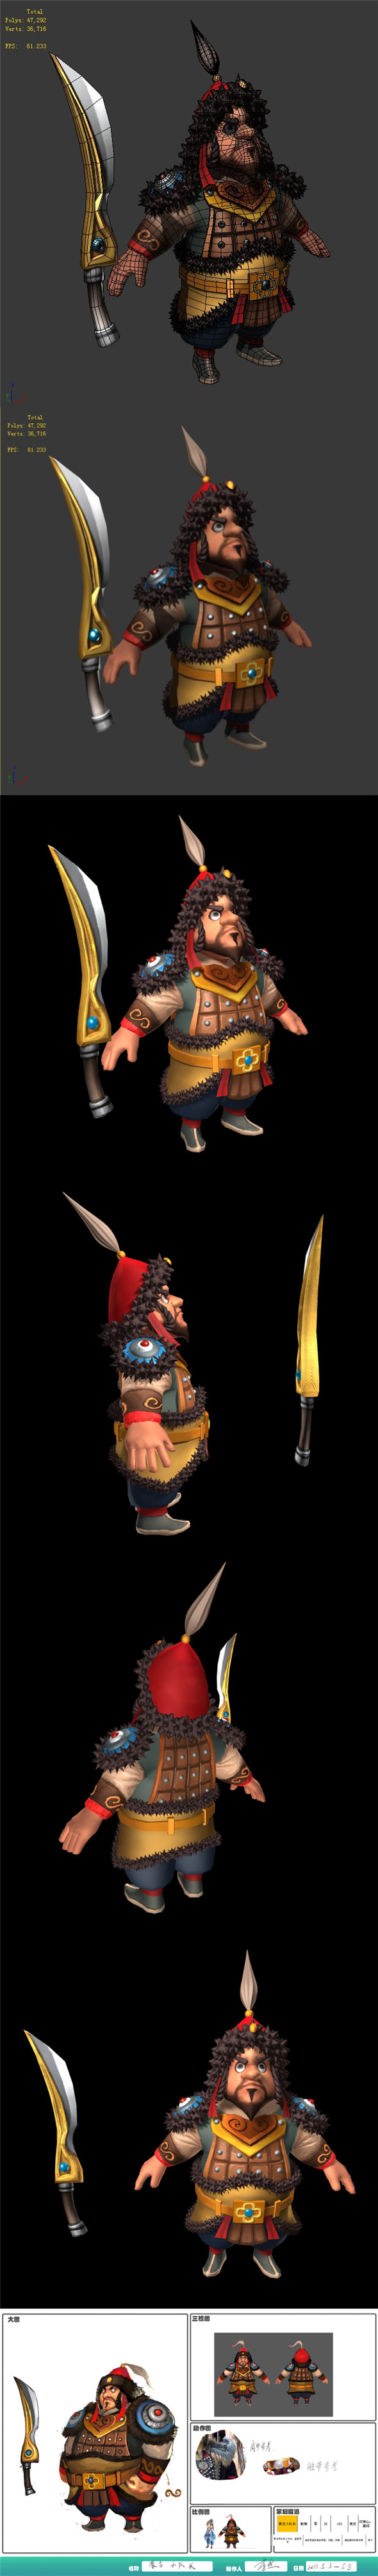 Game characters - Mongolian captain - 3DOcean Item for Sale